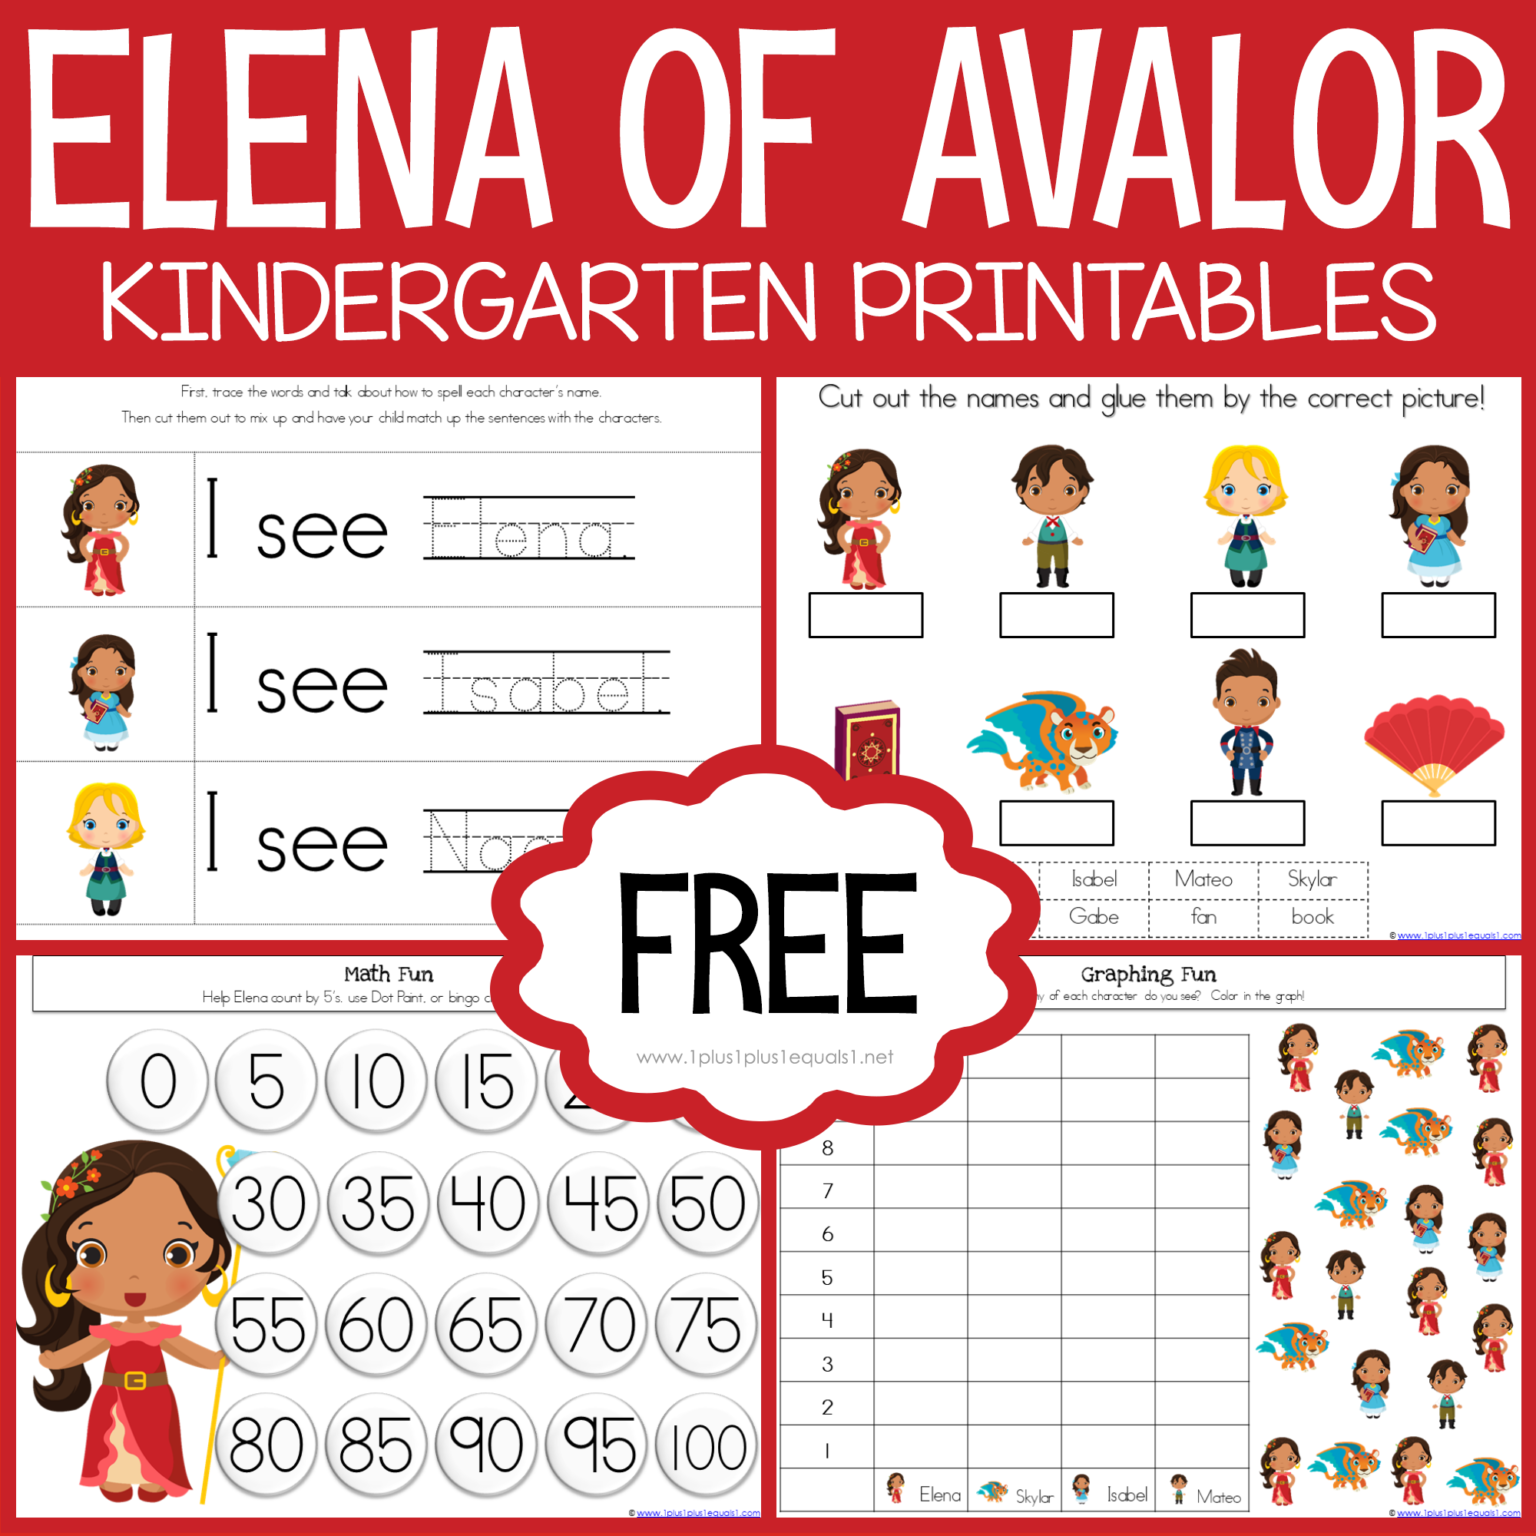 Free Elena Of Avalor Kindergarten Printables Loads Of